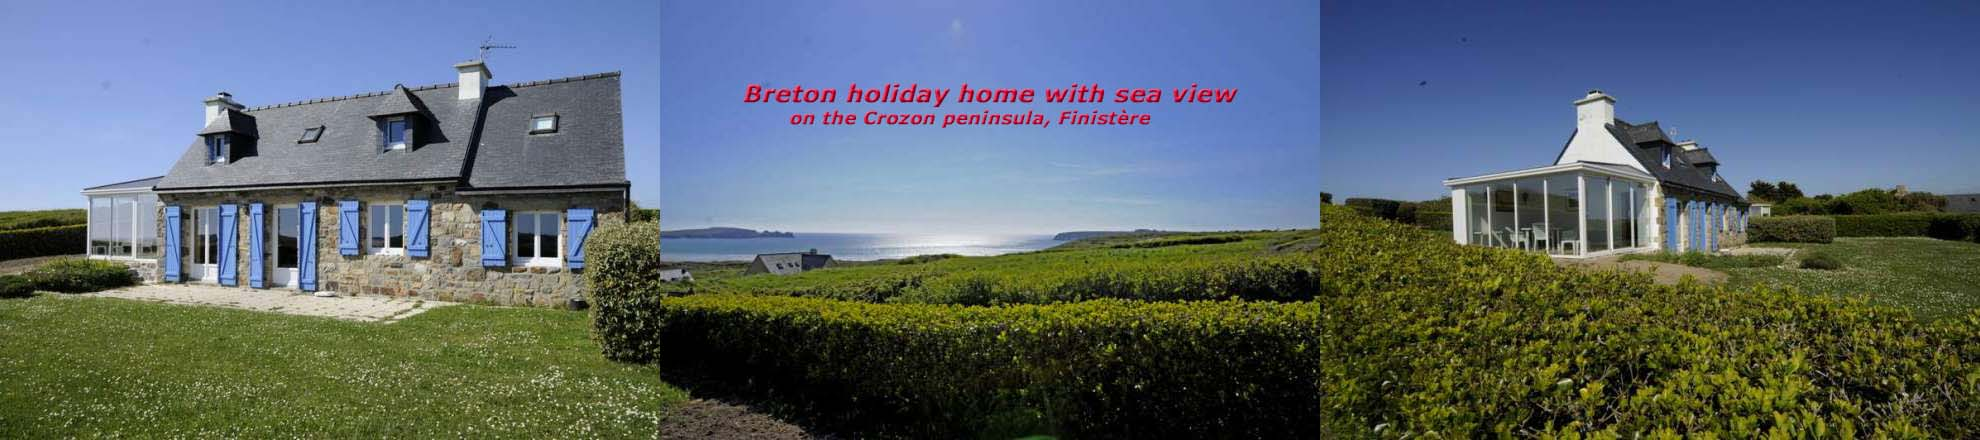 Brittany Holiday-home with sea view: Cottage Gérard Kersiguenou on the Crozon peninsula